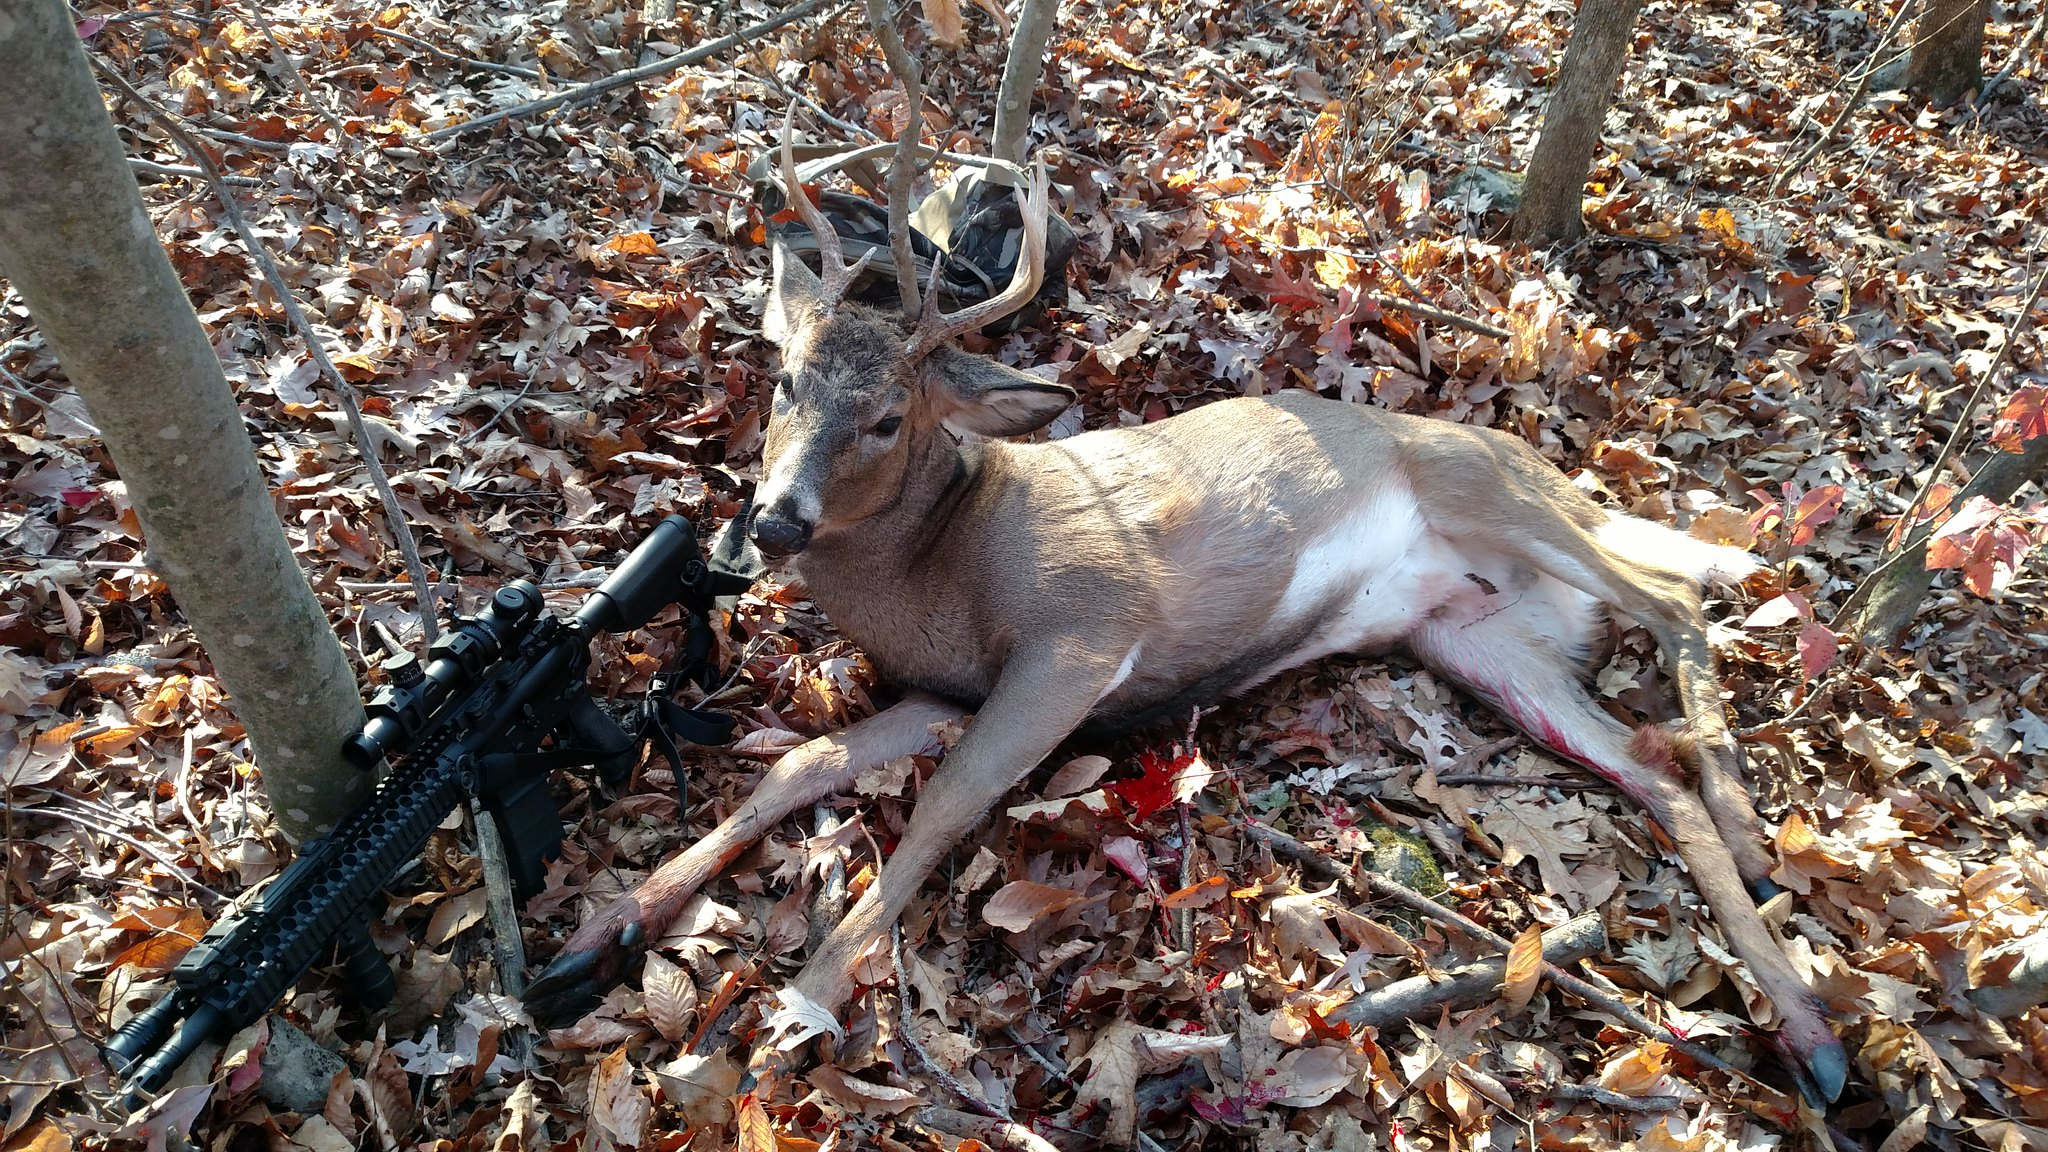 223 whitetail deer hunting round recommendations?? - AR15 COM